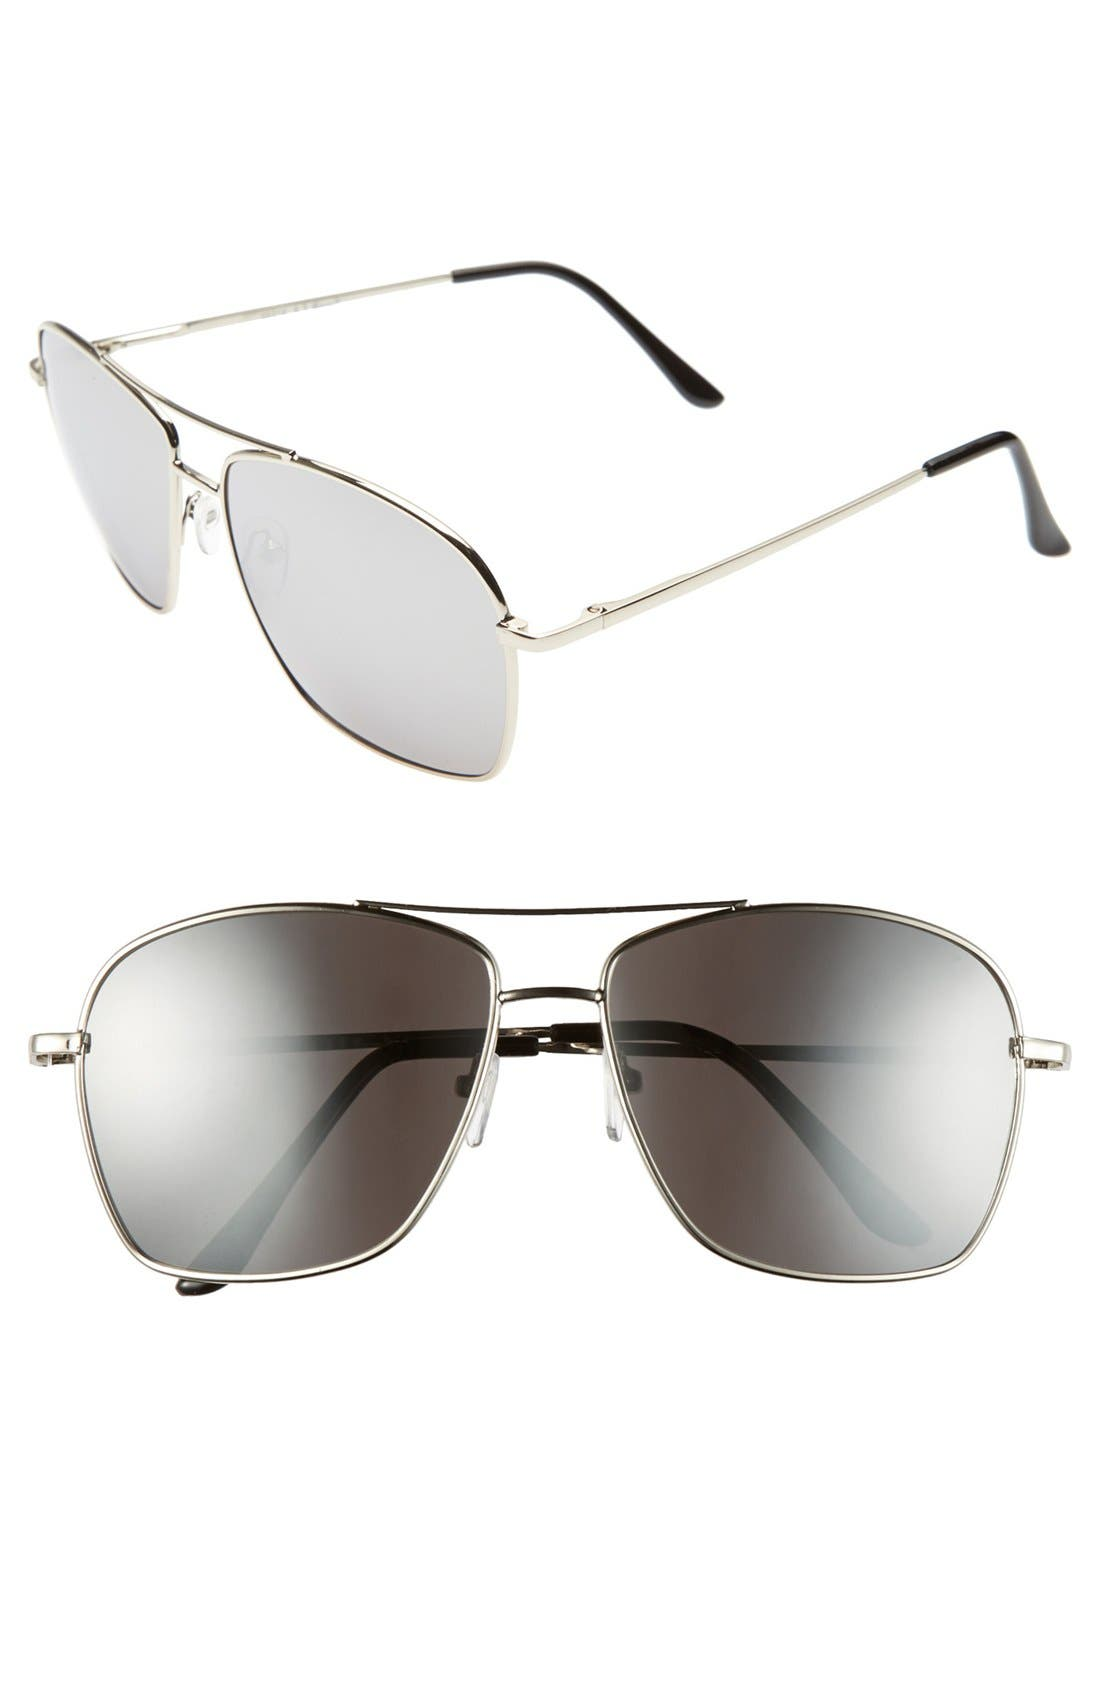 Alternate Image 1 Selected - A.J. Morgan 'Mission' Aviator Sunglasses